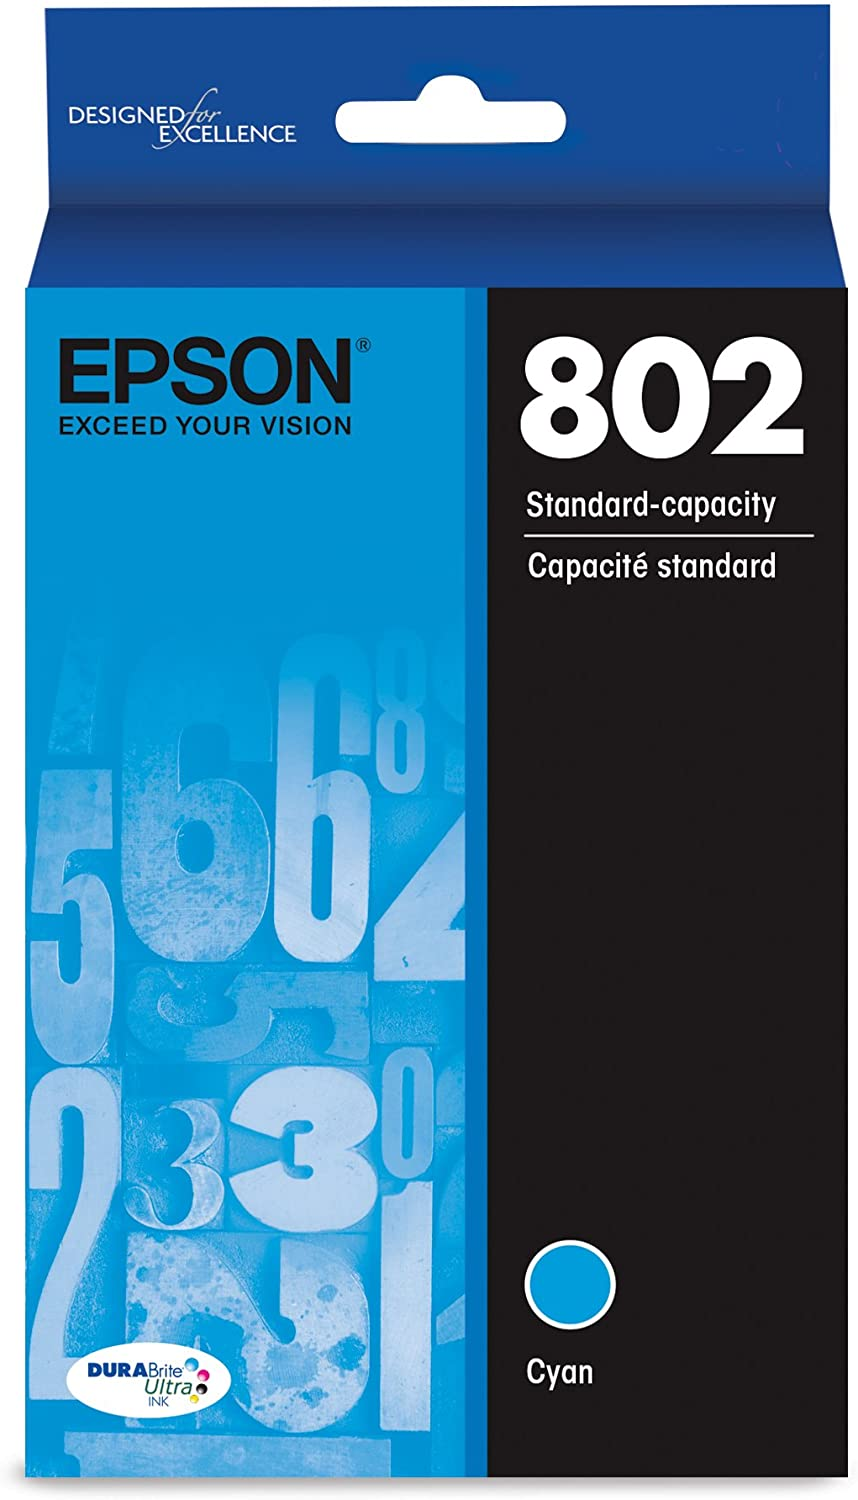 Epson T802220 DURABrite Ultra Cyan Standard Capacity Cartridge Ink